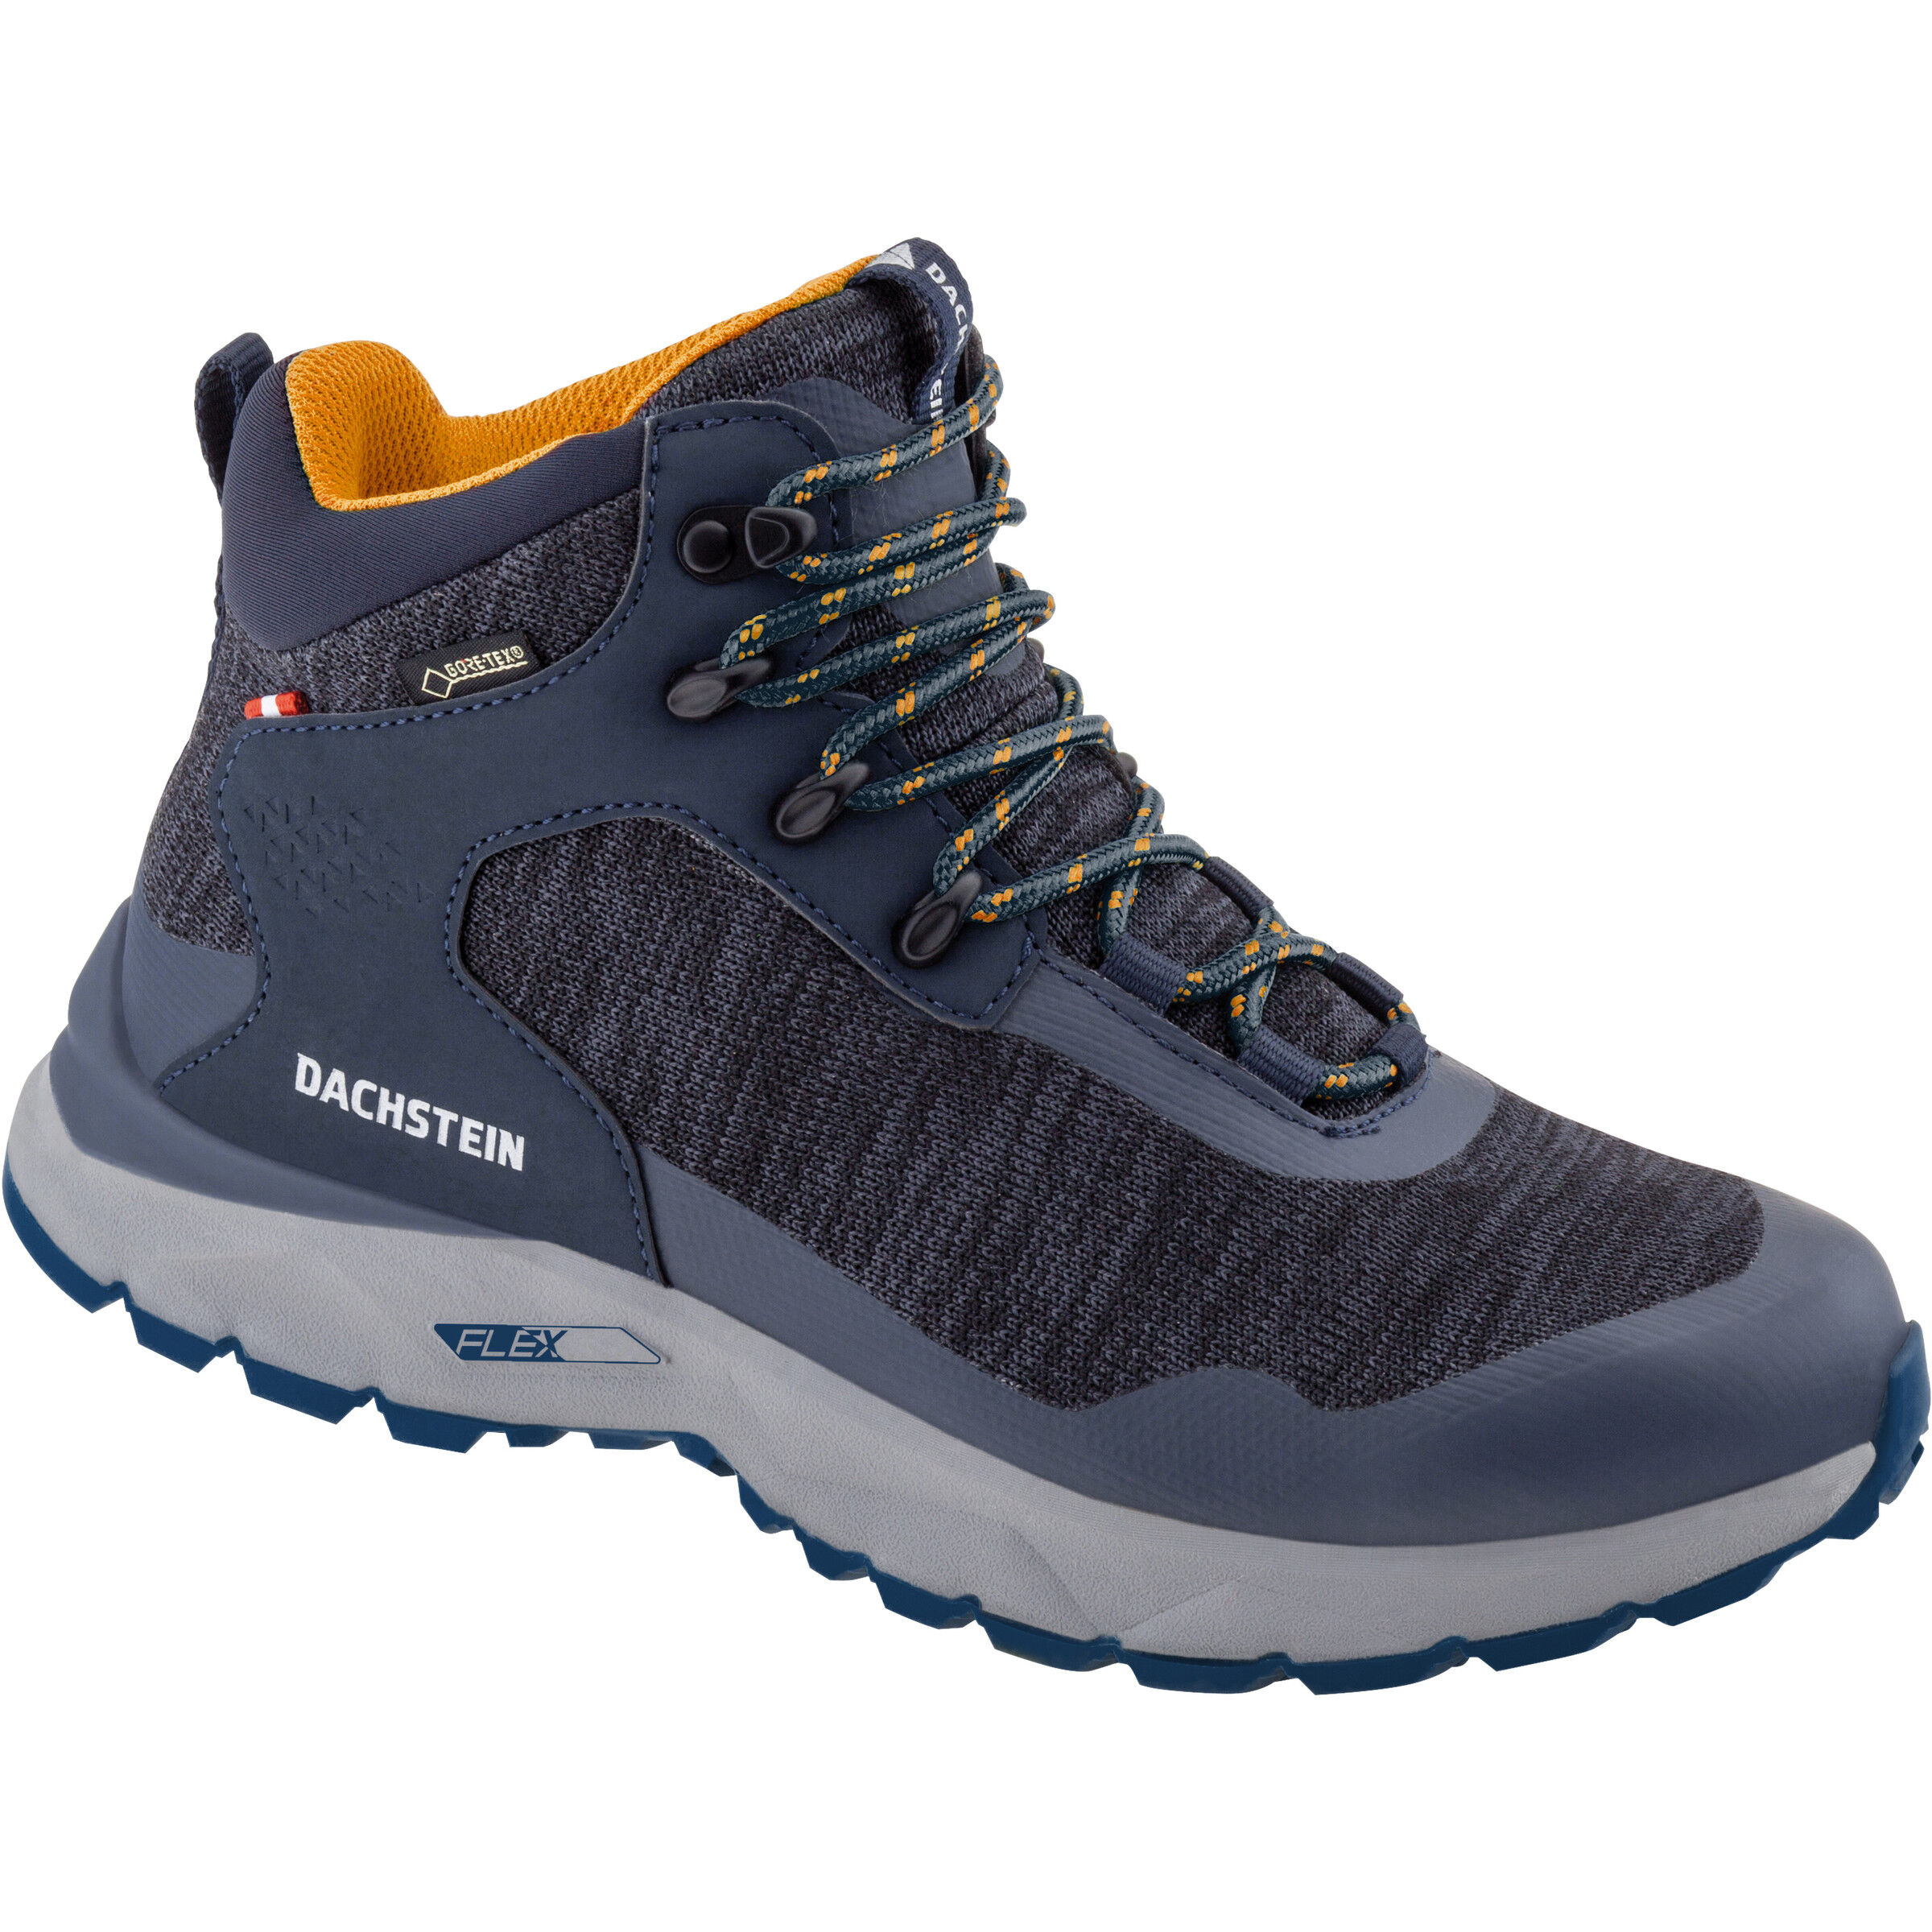 Dachstein Schober MC GTX Shoes Herren graphitesulphur